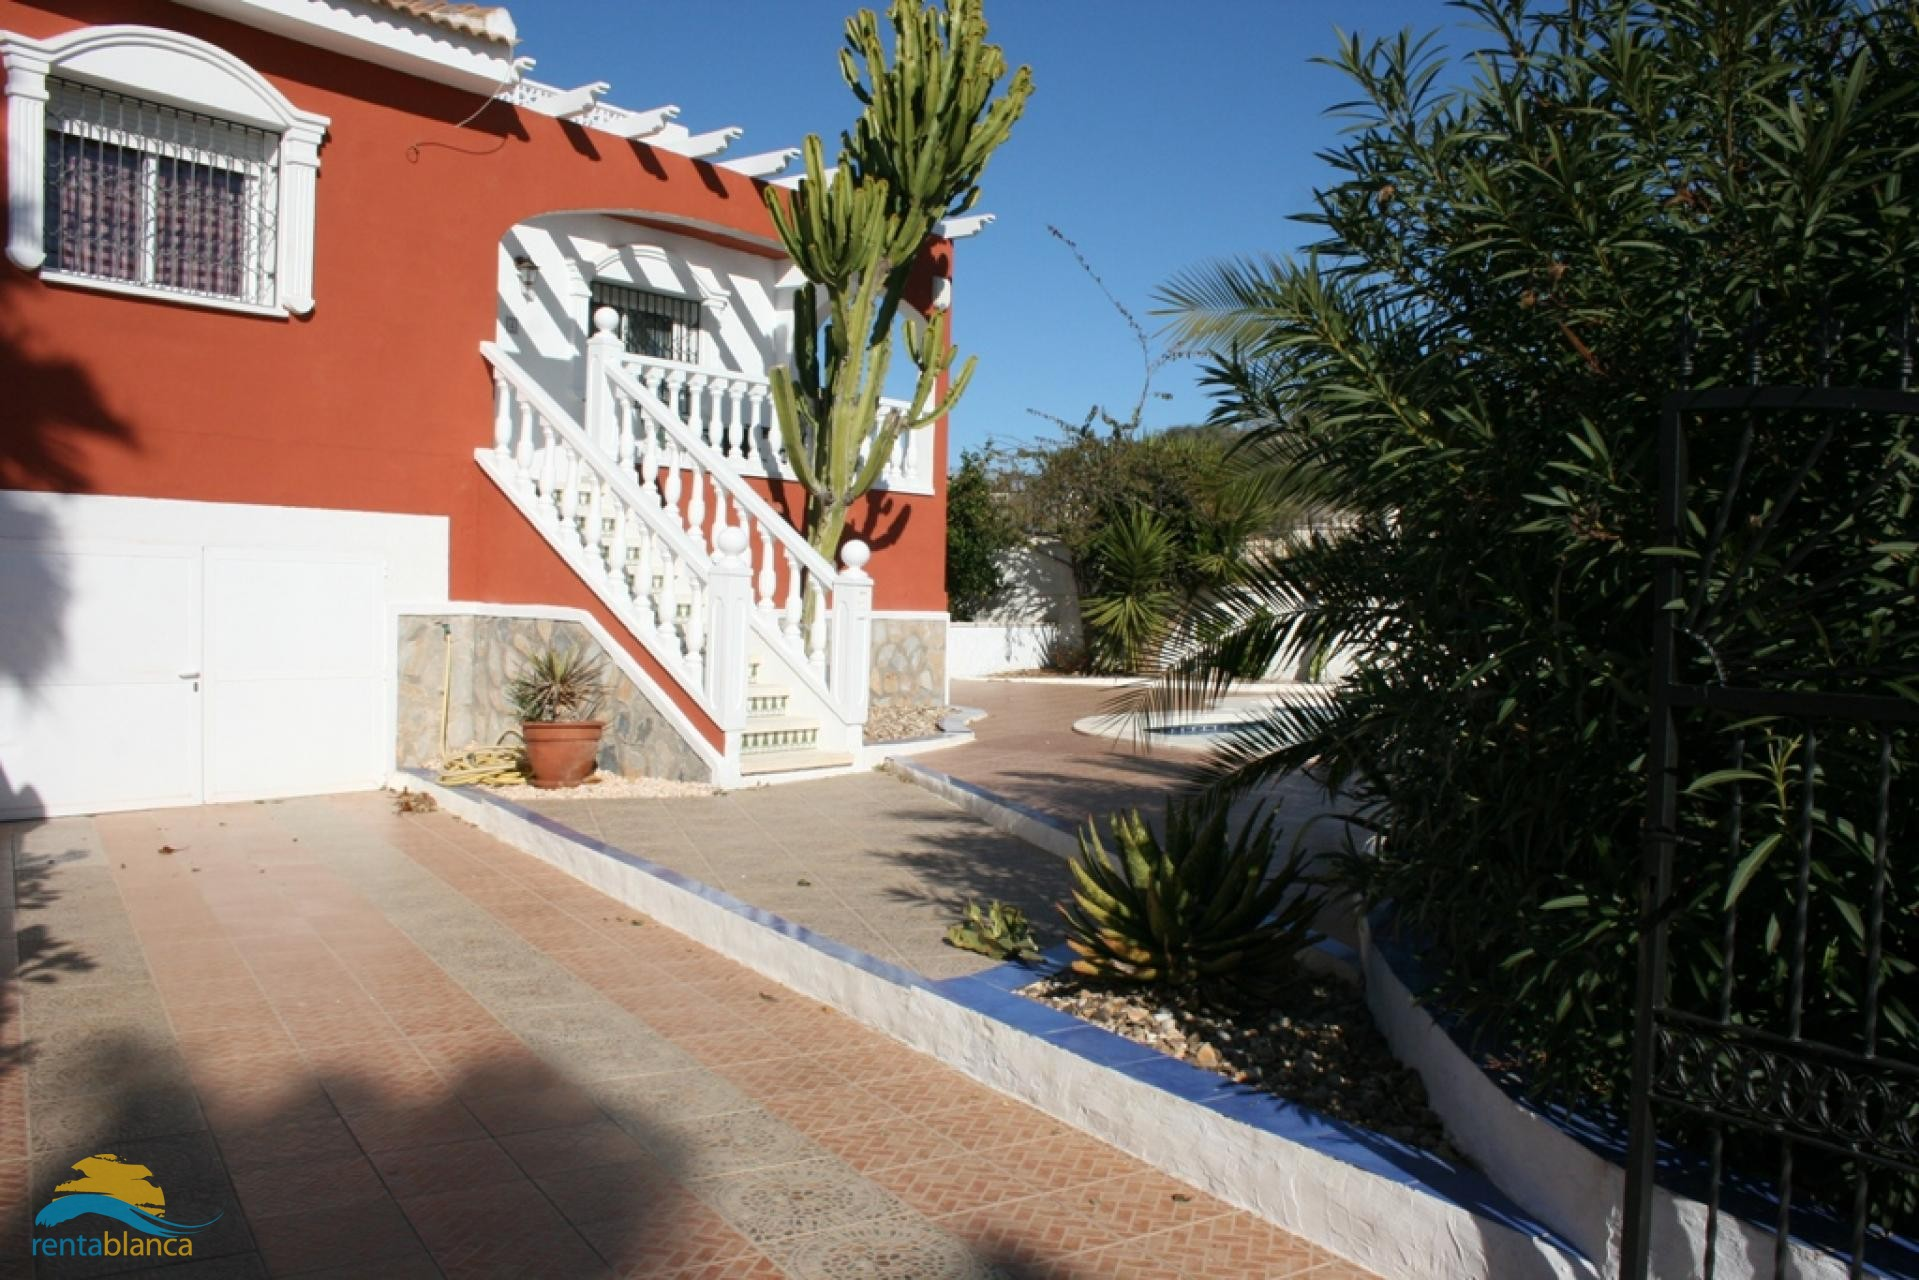 Semi detached villa - La Fiesta II  - Rentablanca